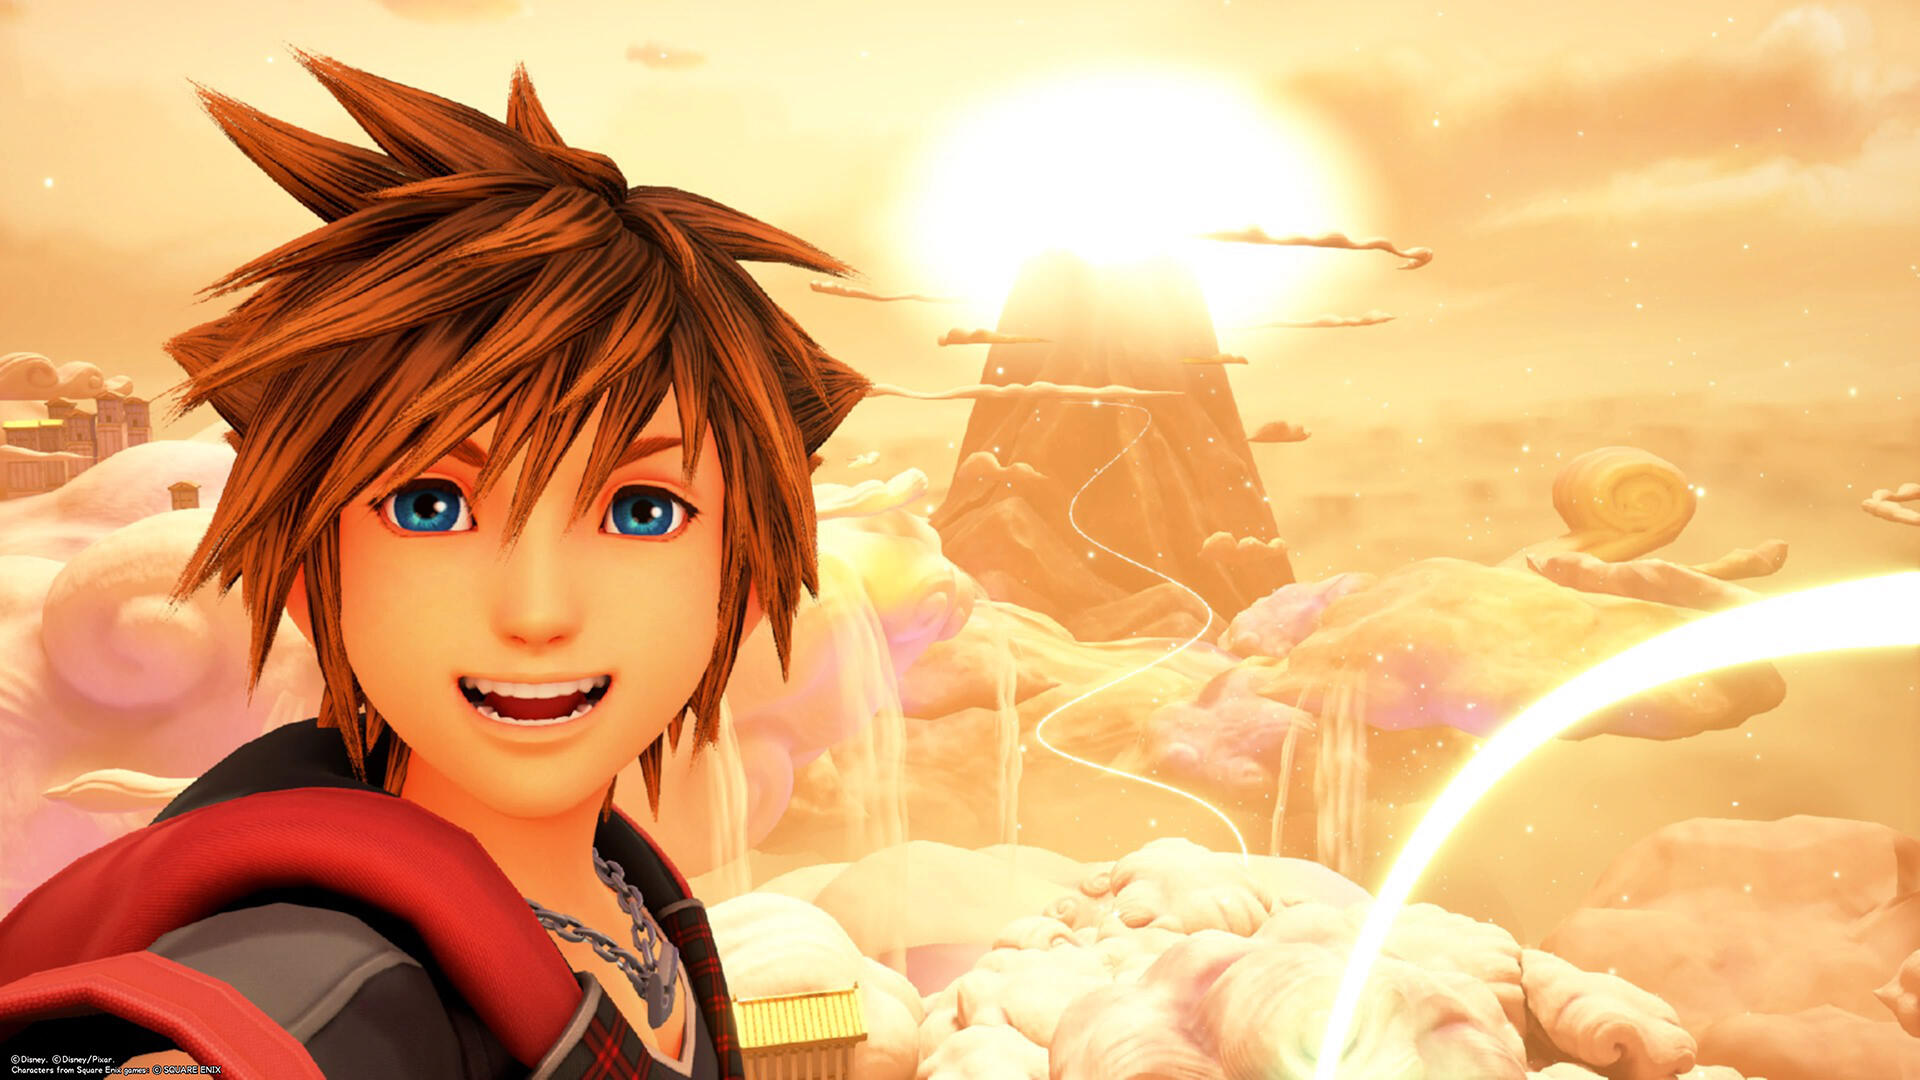 Kingdom Hearts 3 Keyblade List - Upgrades, Best Keyblade, How to Get the Ultima Weapon